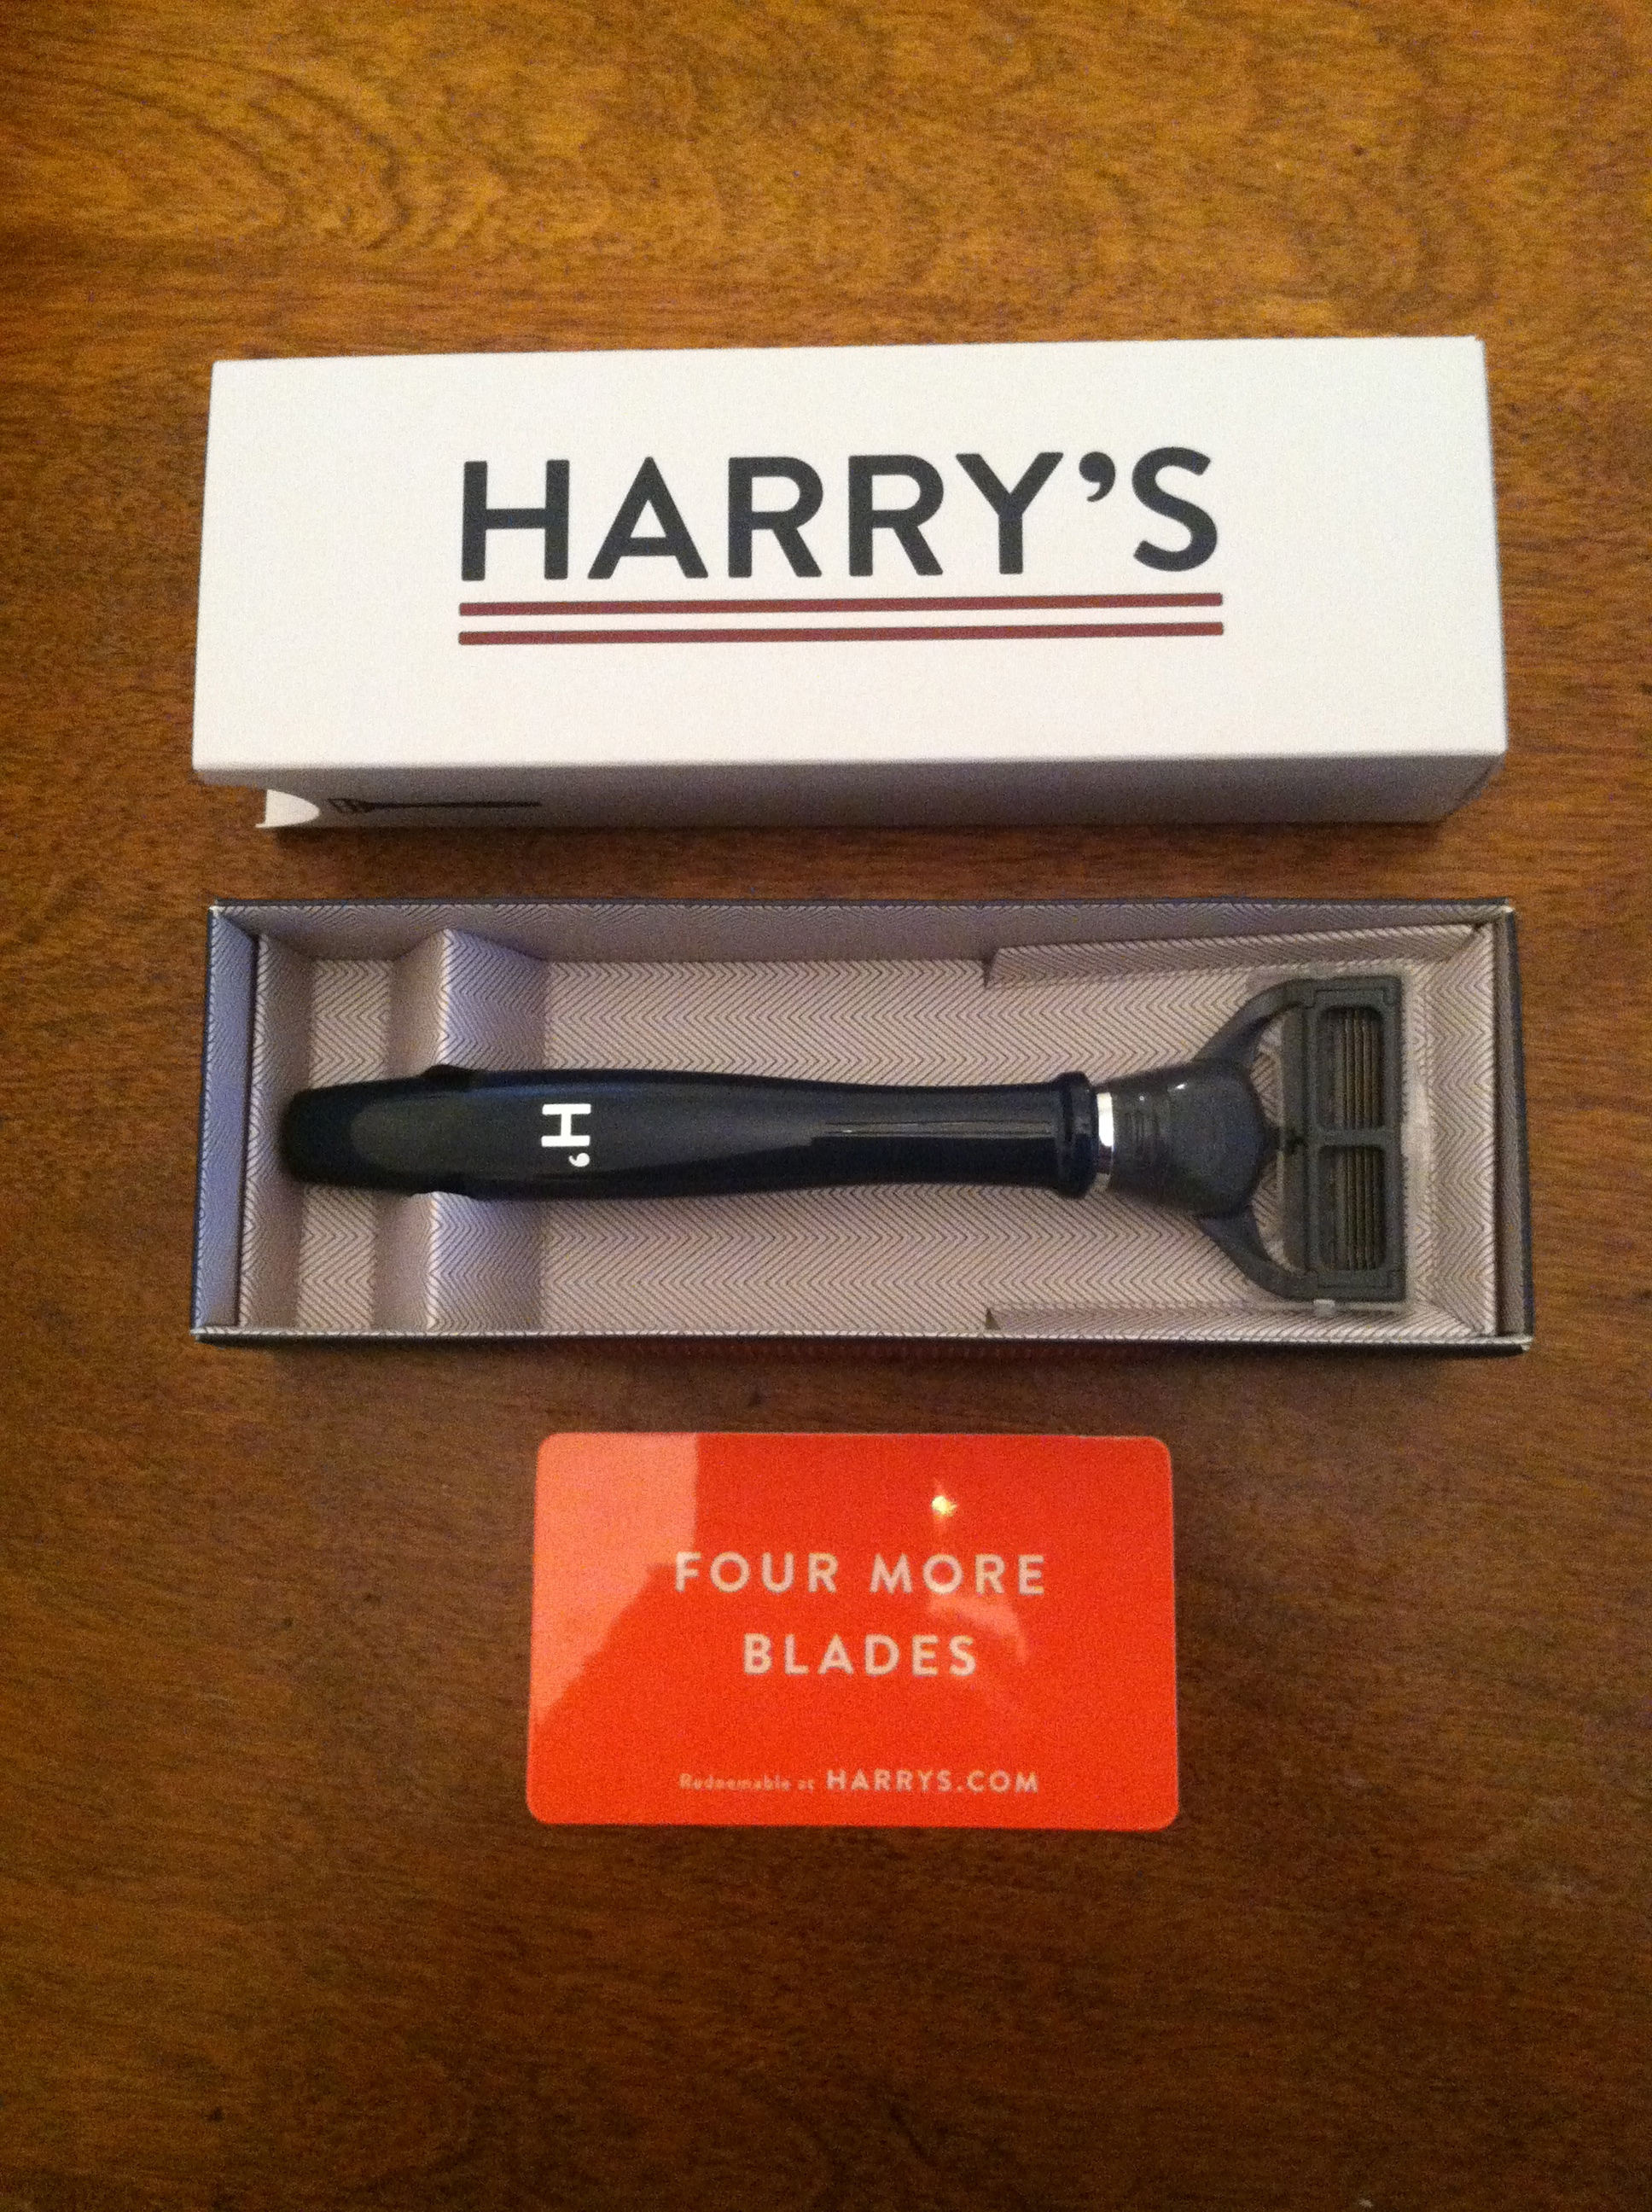 Harry's razors coupon code